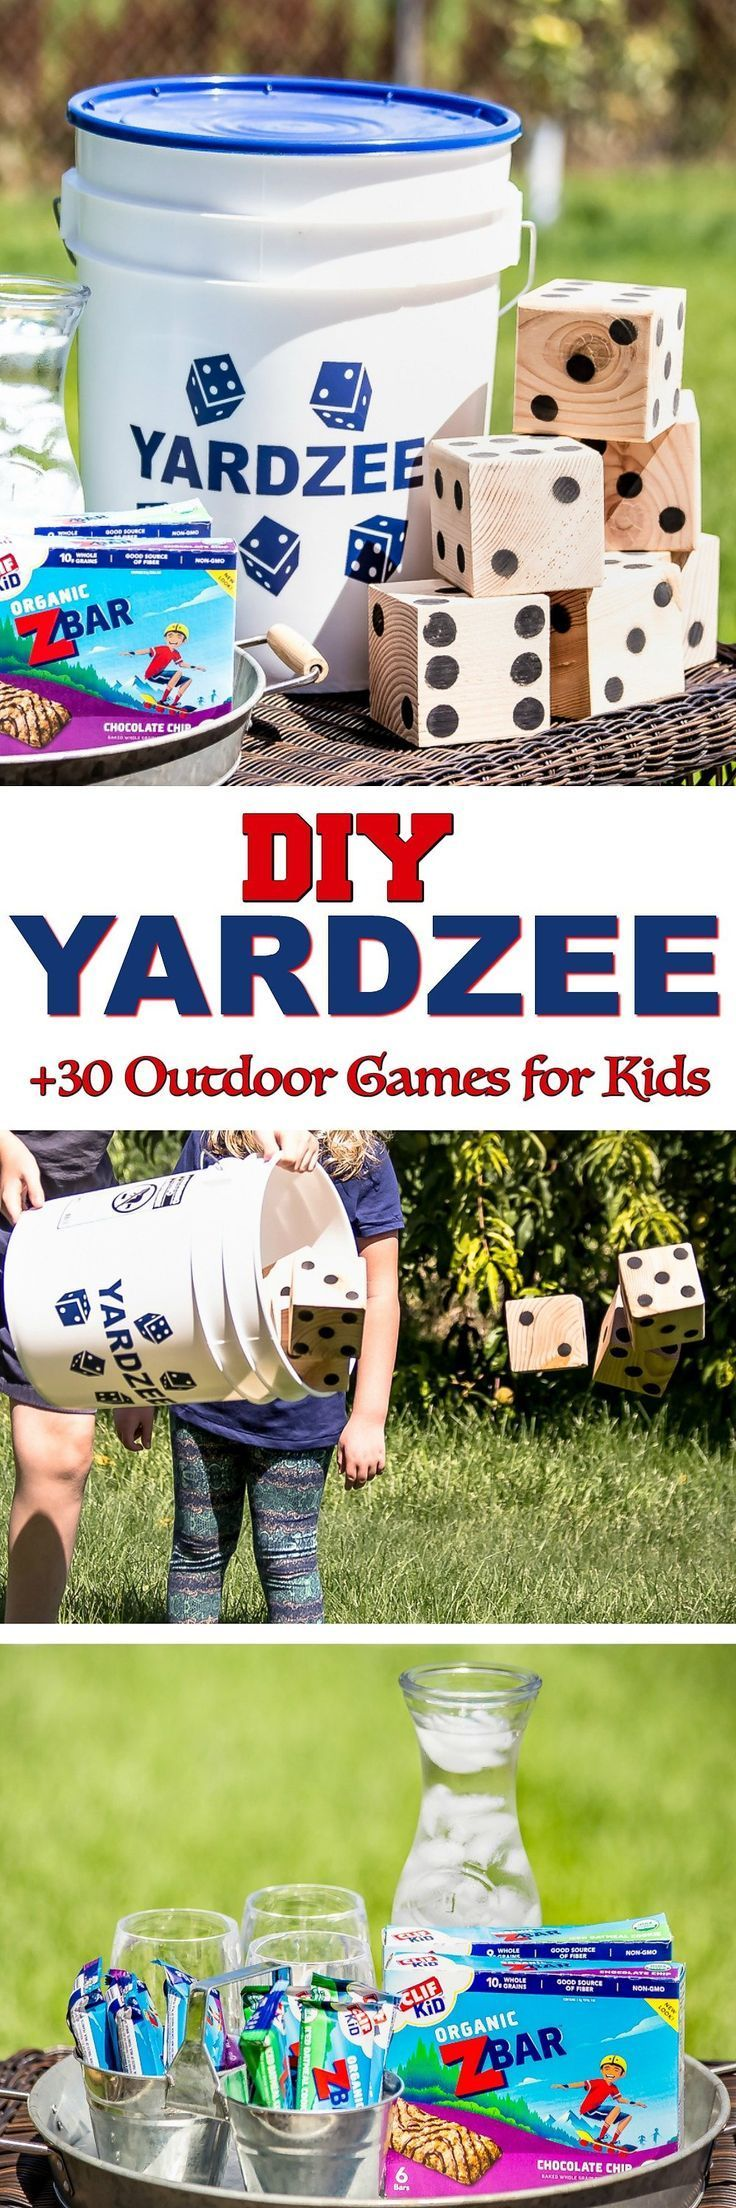 "Whatever happened to PLAY? Kids spend too much time indoors. So check out these classic outdoor games for kids plus a DIY Yardzee Tutorial to get your kids outside playing and active again!  #CLIFKid AD [   ""Backpacking tutorial christmas gifts Whatever happened to PLAY? Kids spend too much time indoors. So check out these classic outdoor games for kids plus a DIY Yardzee Tutorial to get your kids outside playing and active again!"",   ""Made one for Alaisa and James for Christmas."",   ""Mom…"